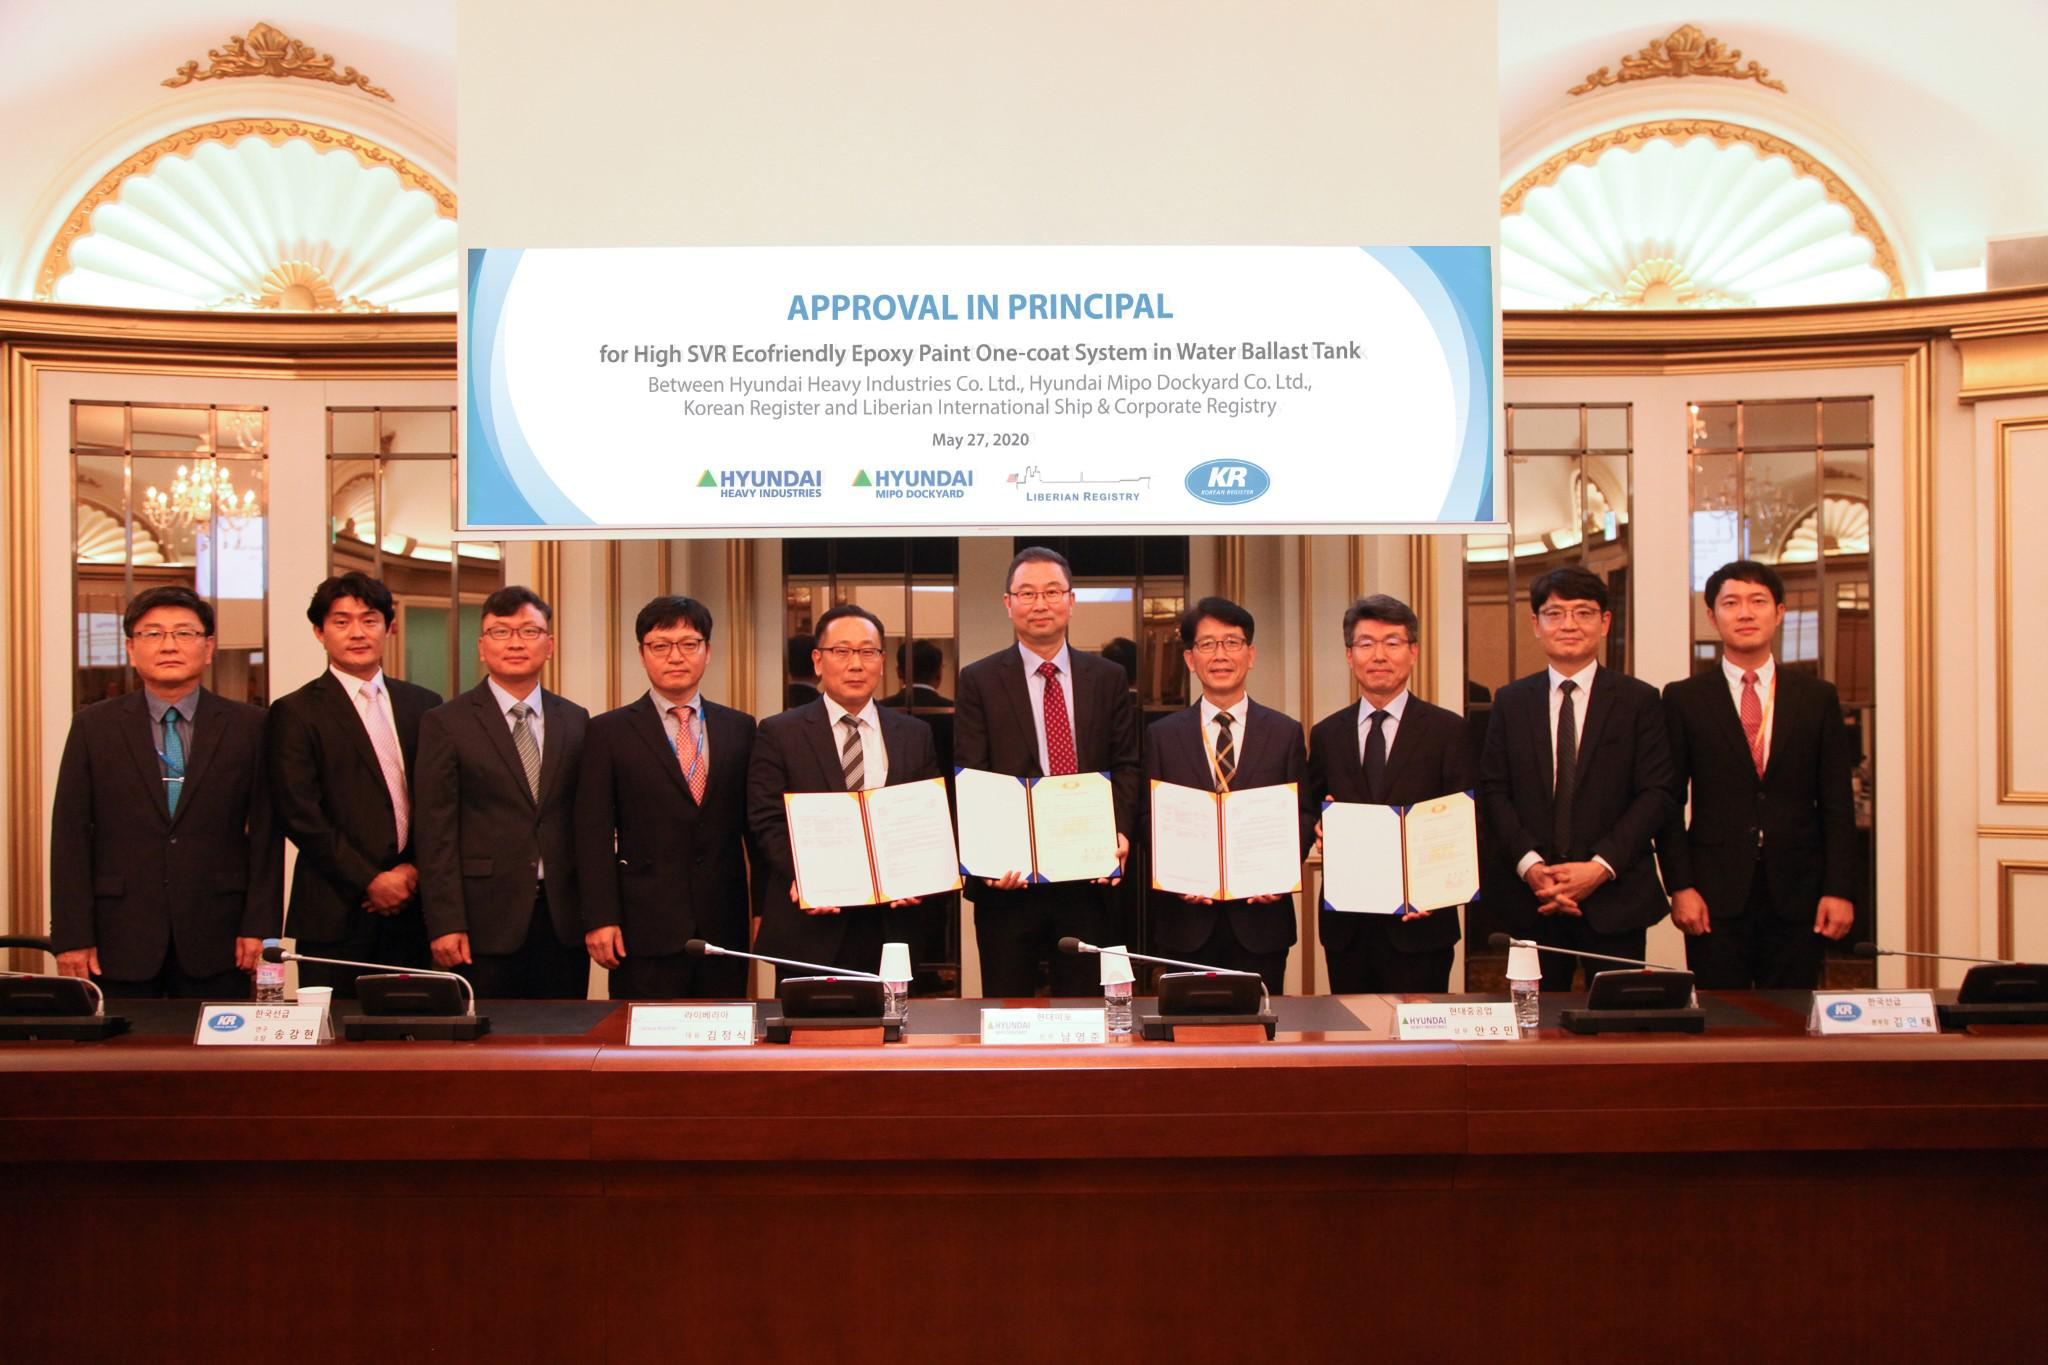 Certification award ceremony for eco-friendly 1 Coat System (AIP) held at the Korean Register of Shipping